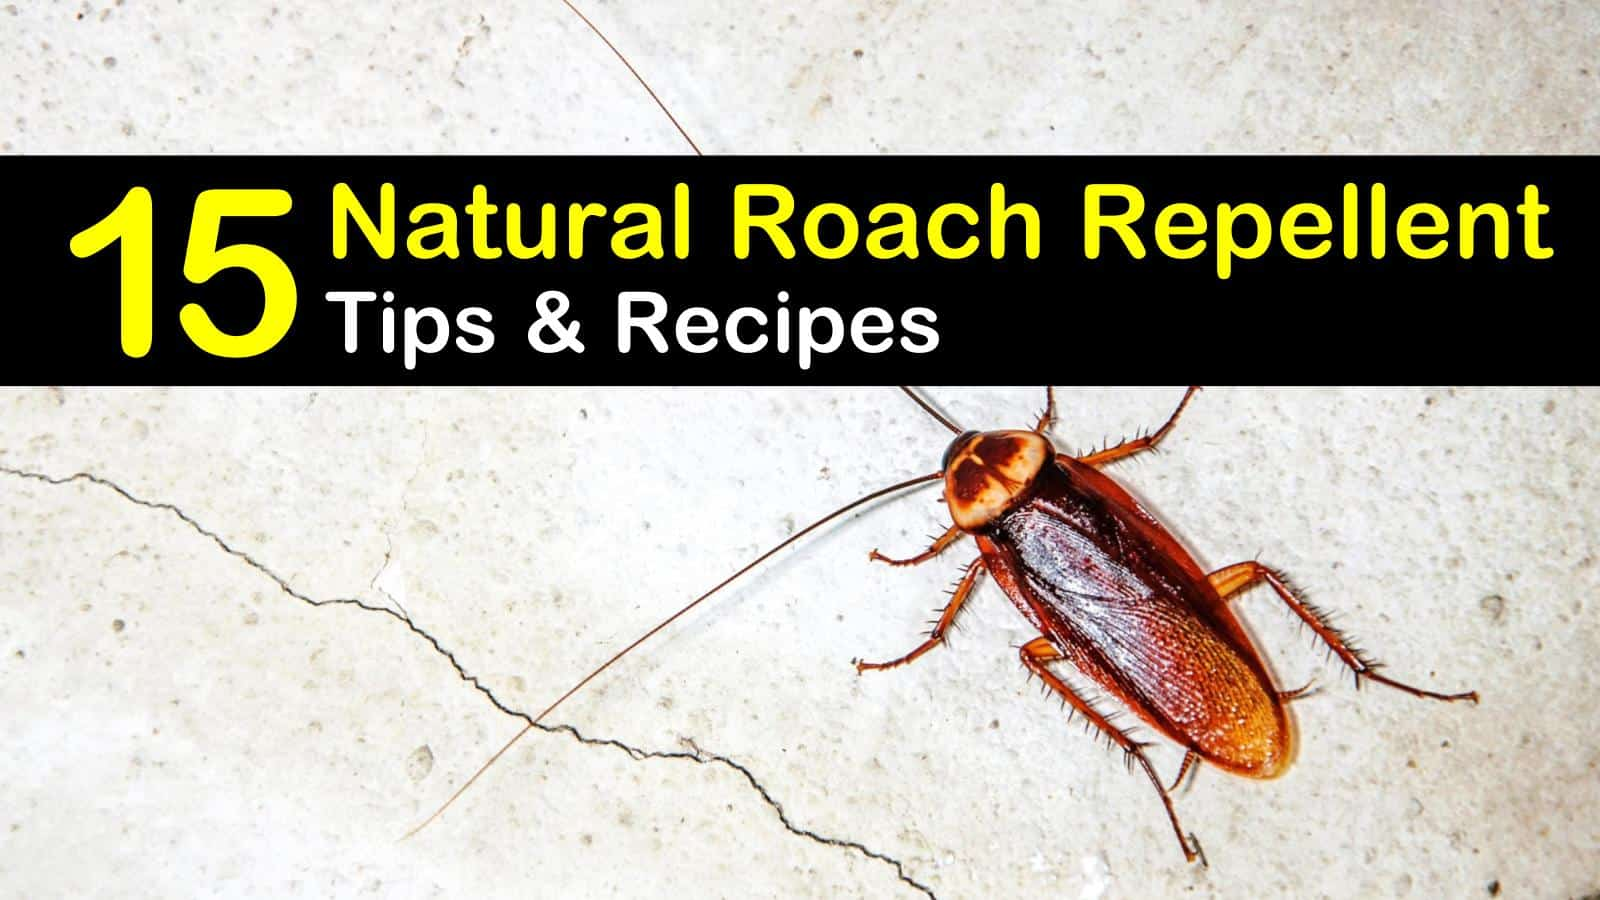 natural roach repellent titleimg1